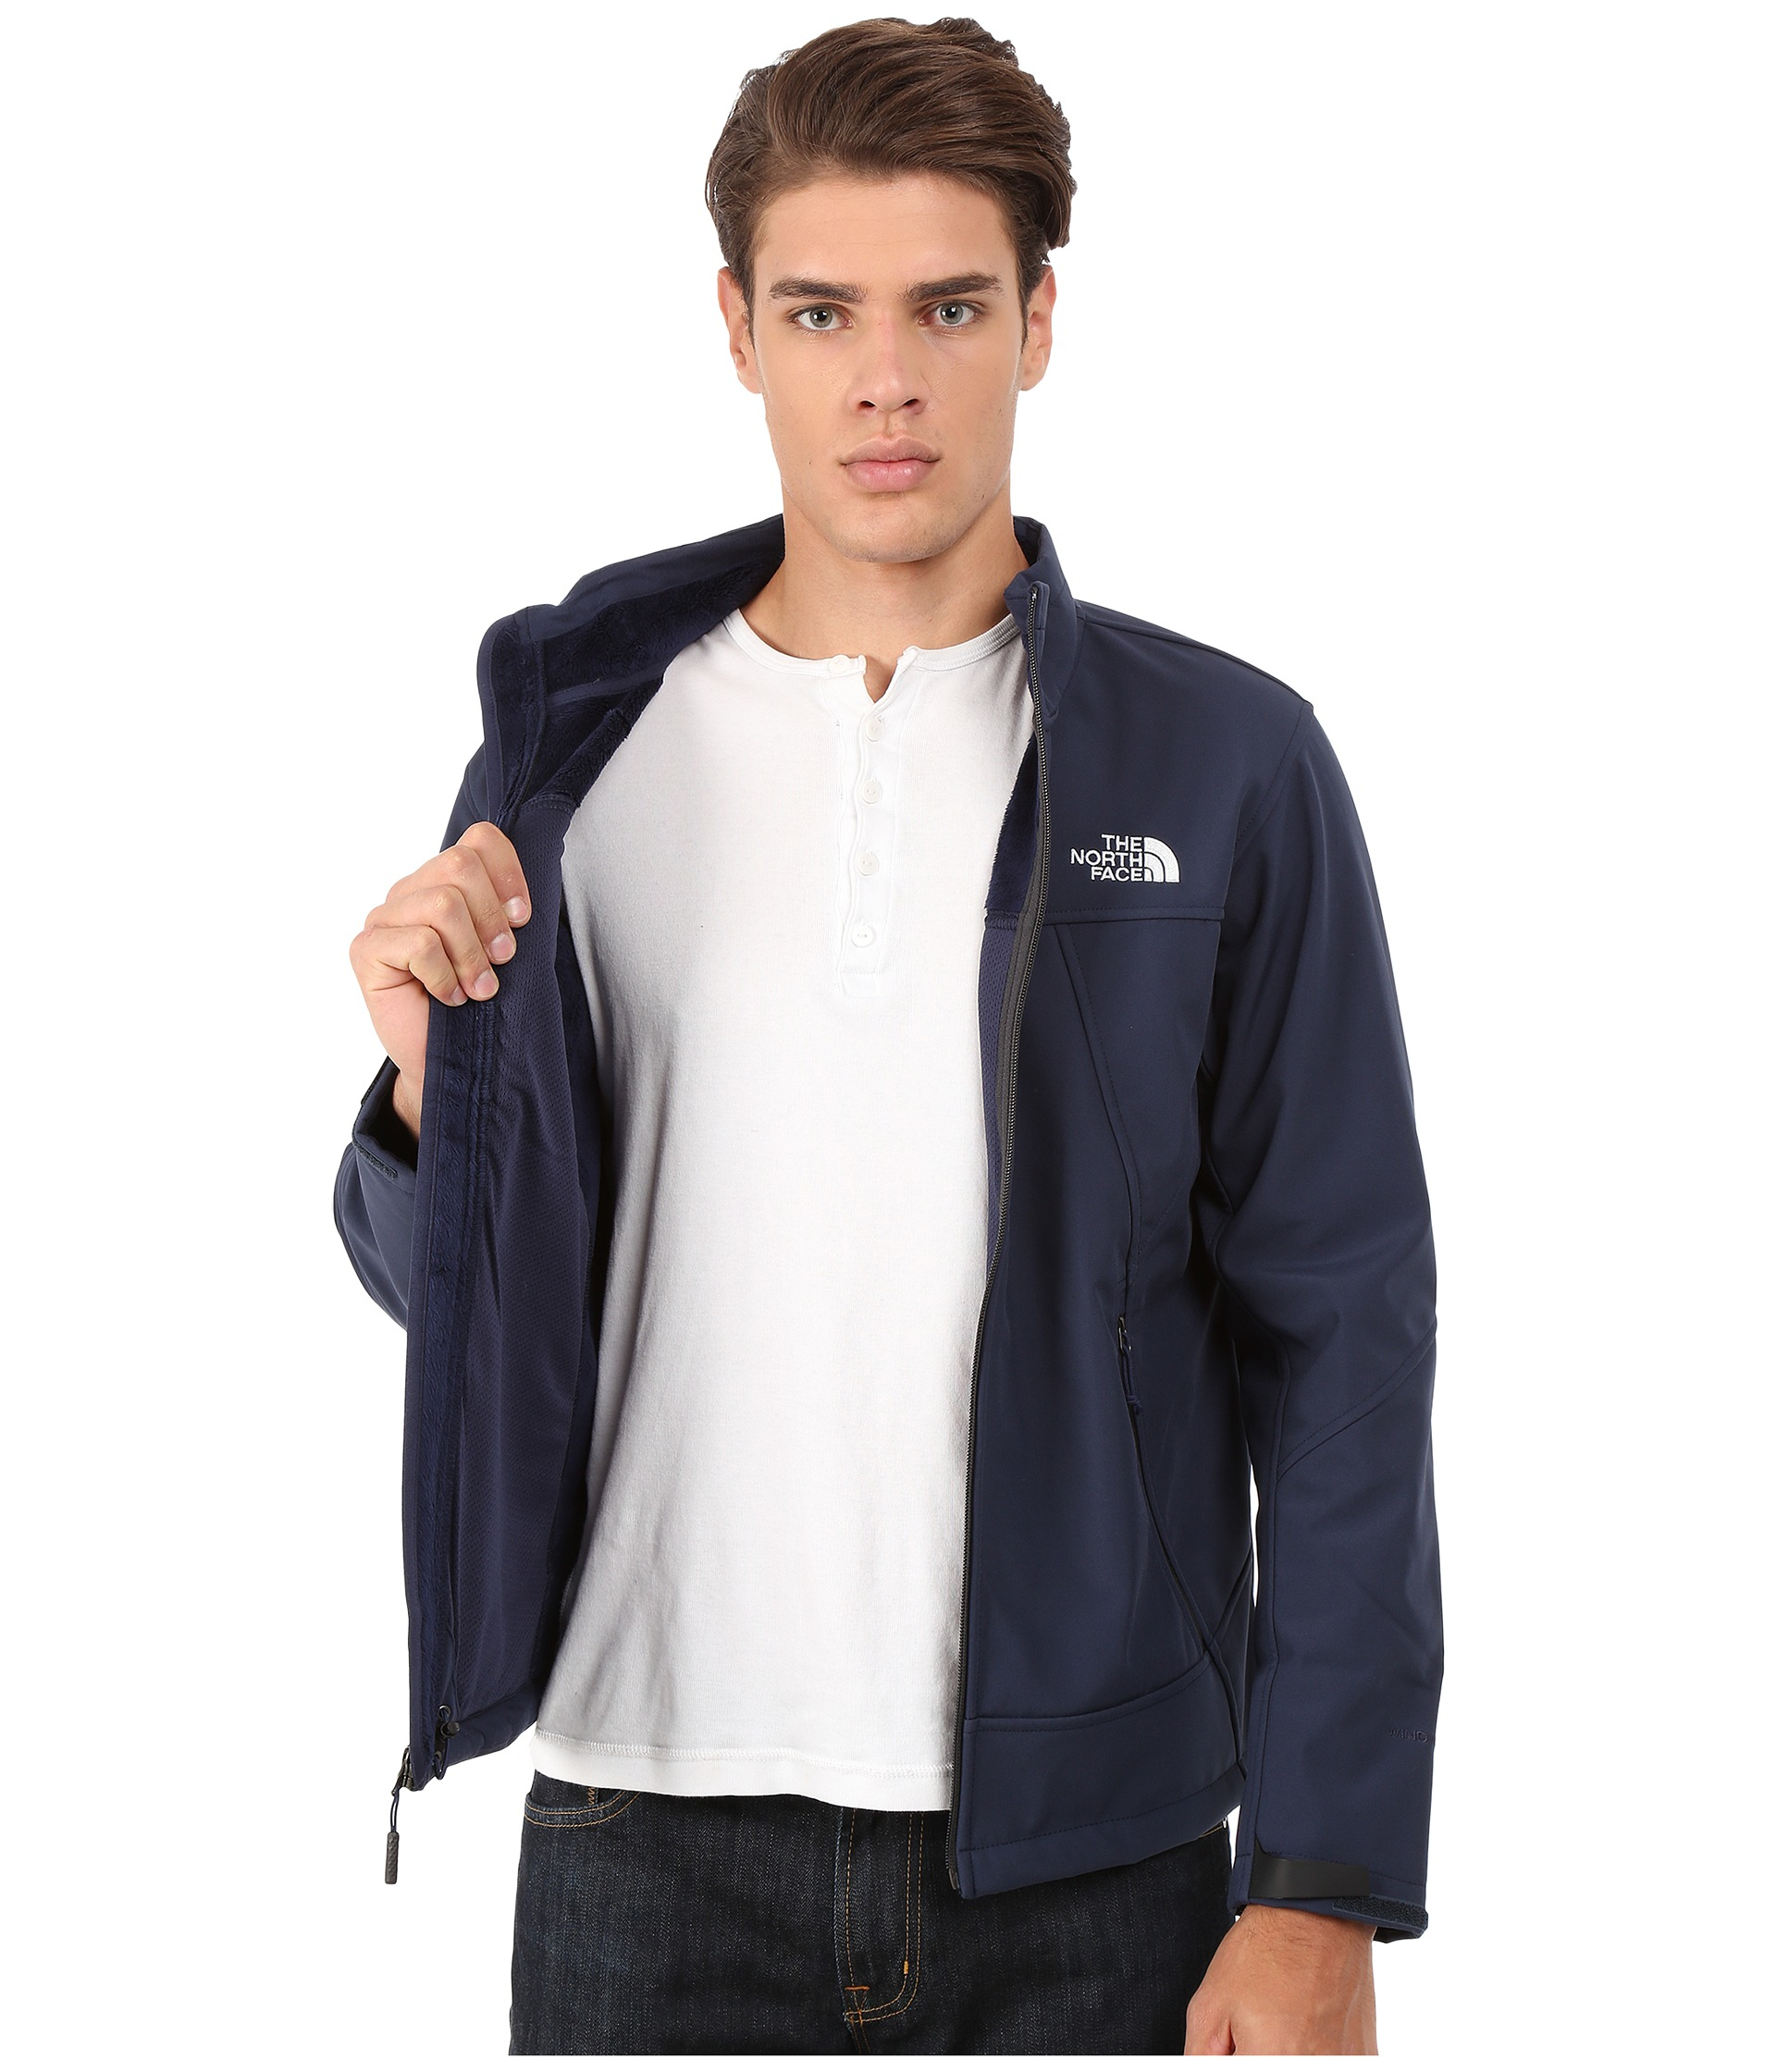 d13f36a93 The North Face Blue Apex Chromium Thermal Jacket for men